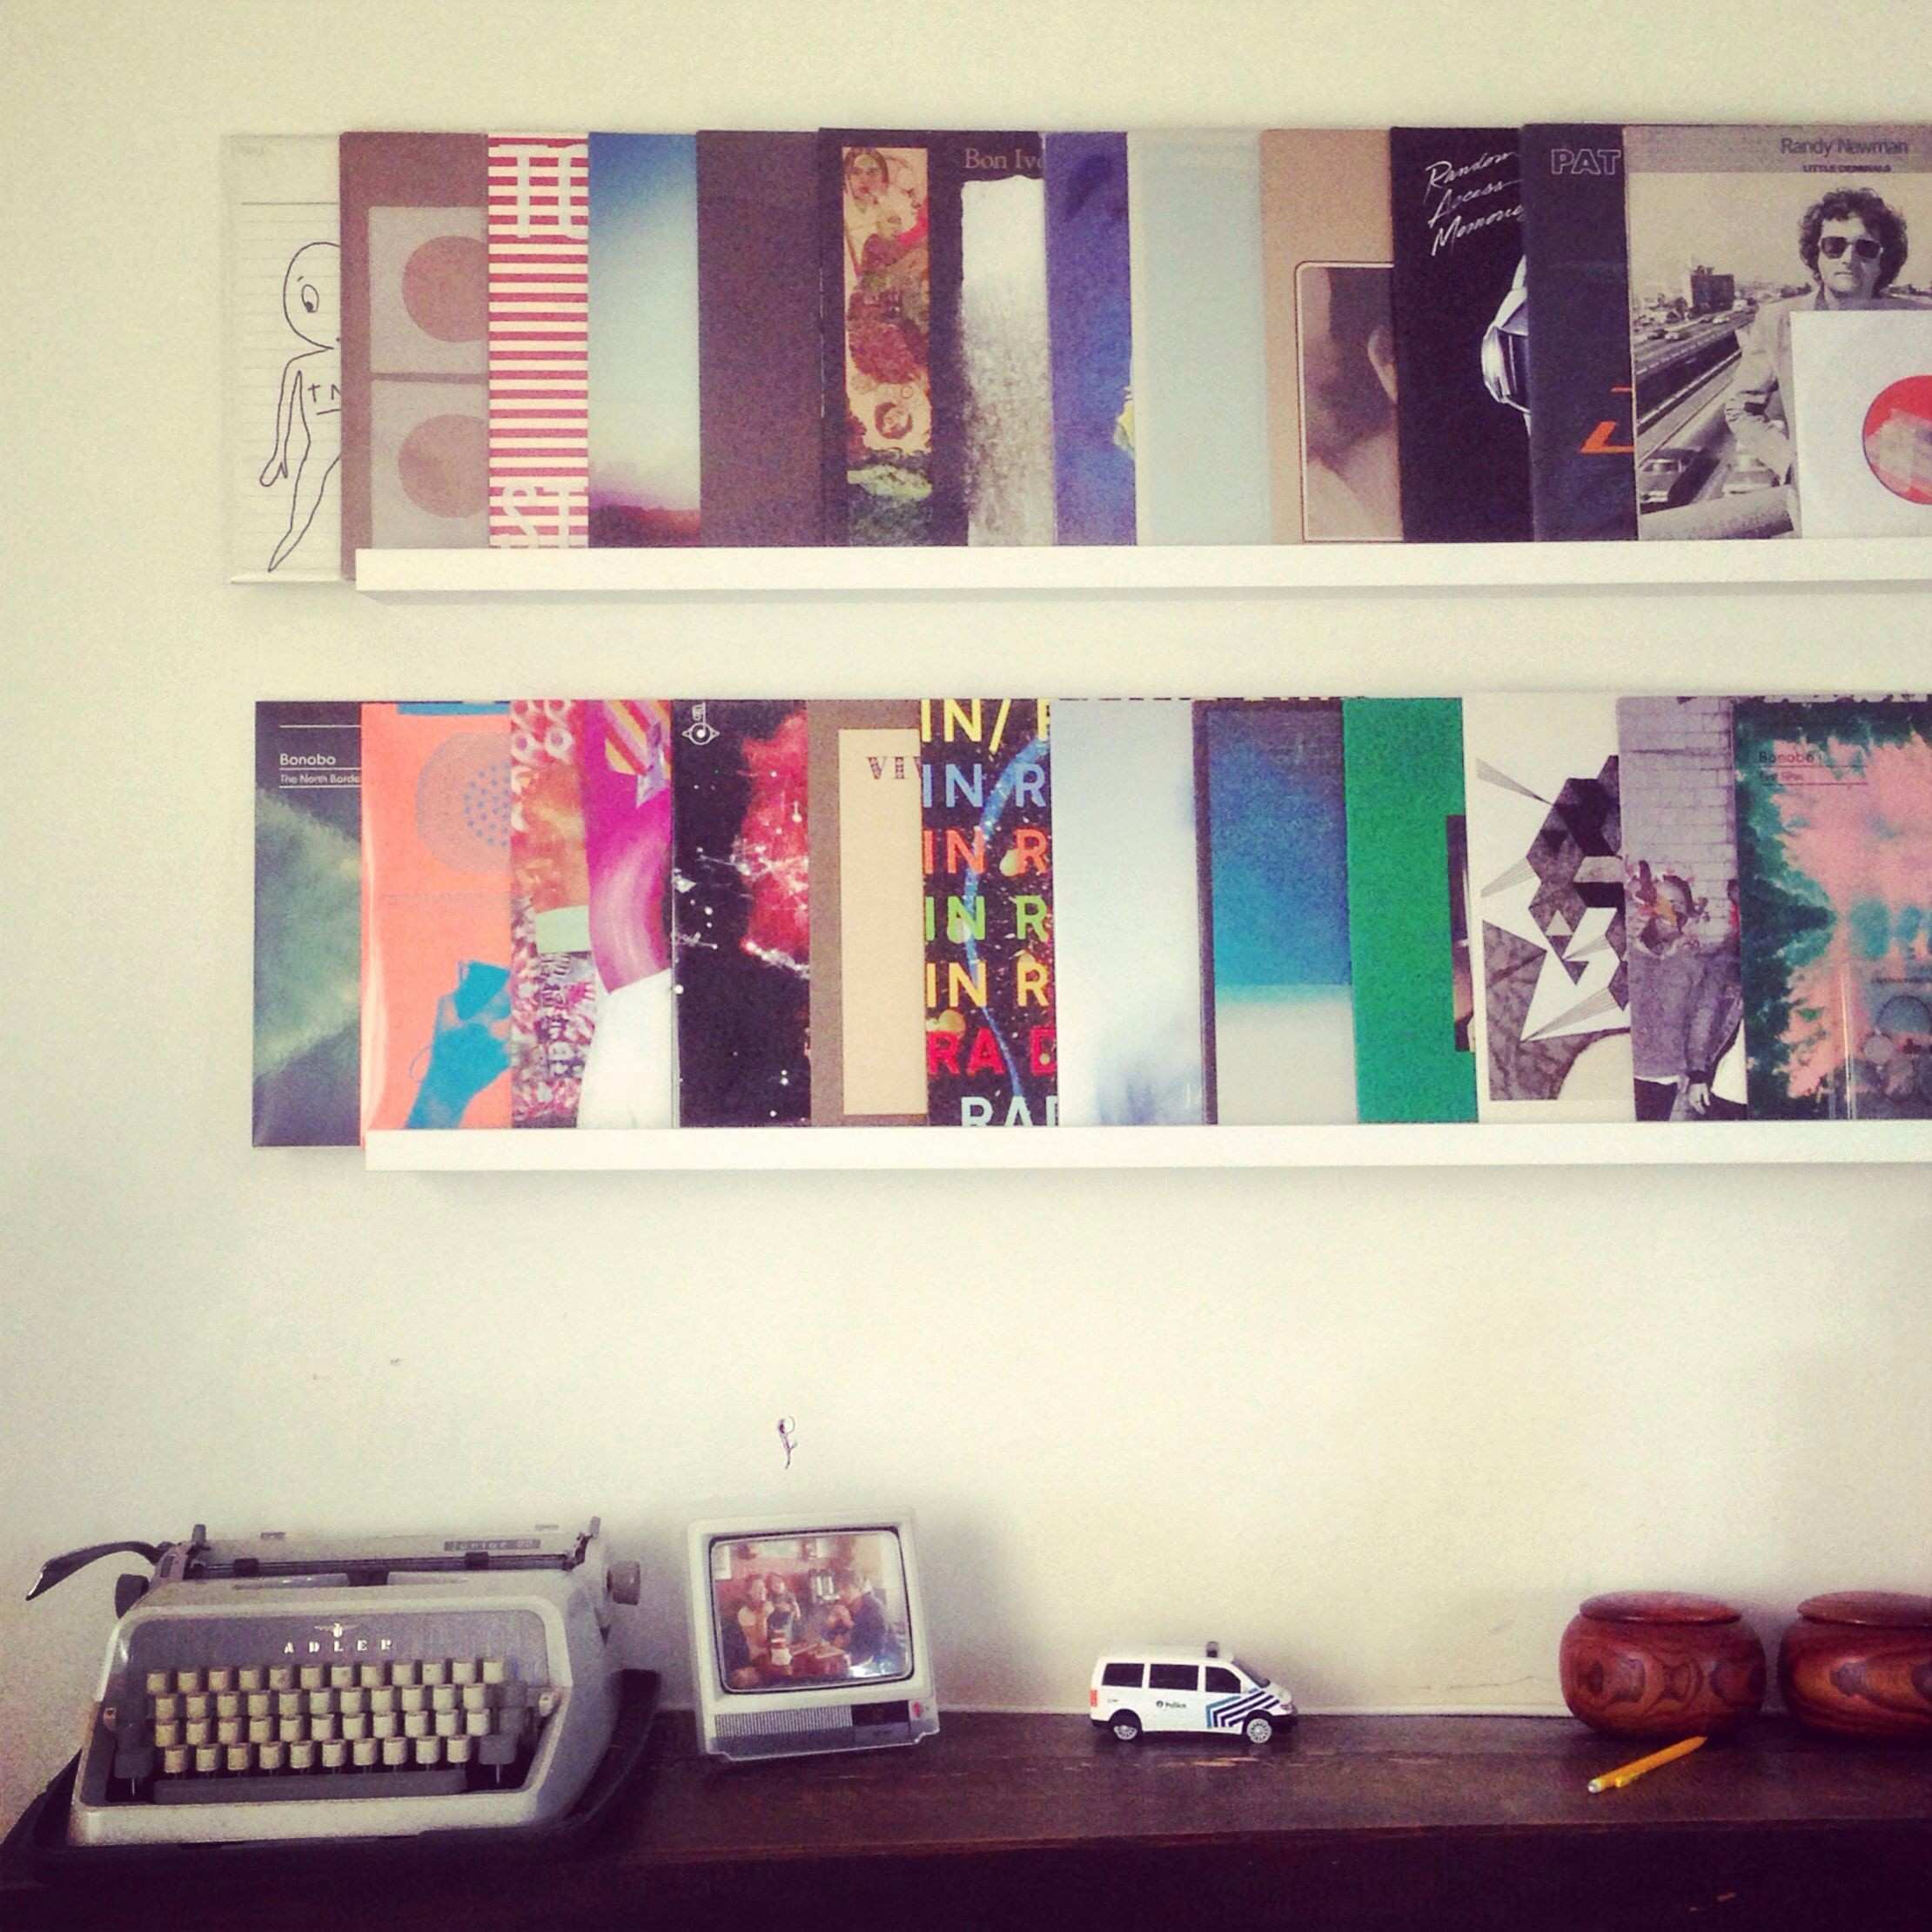 26 Inspirational Vinyl Records Decorations for Wall